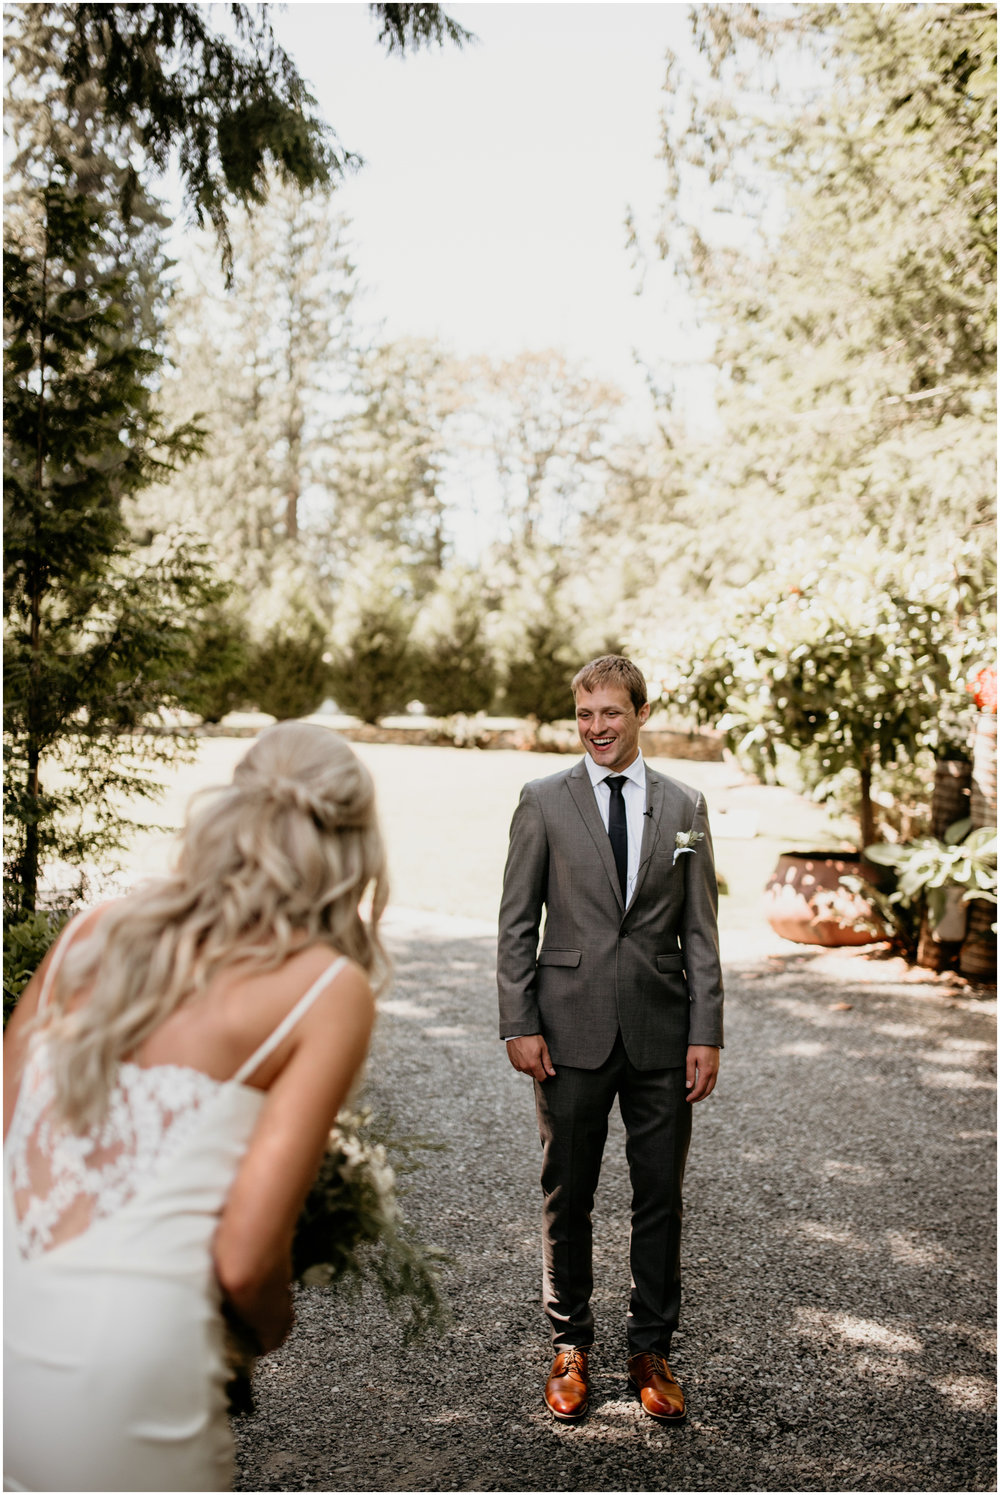 alicia-and-andy-green-gates-at-flowing-lake-seattle-wedding-photographer-029.jpg